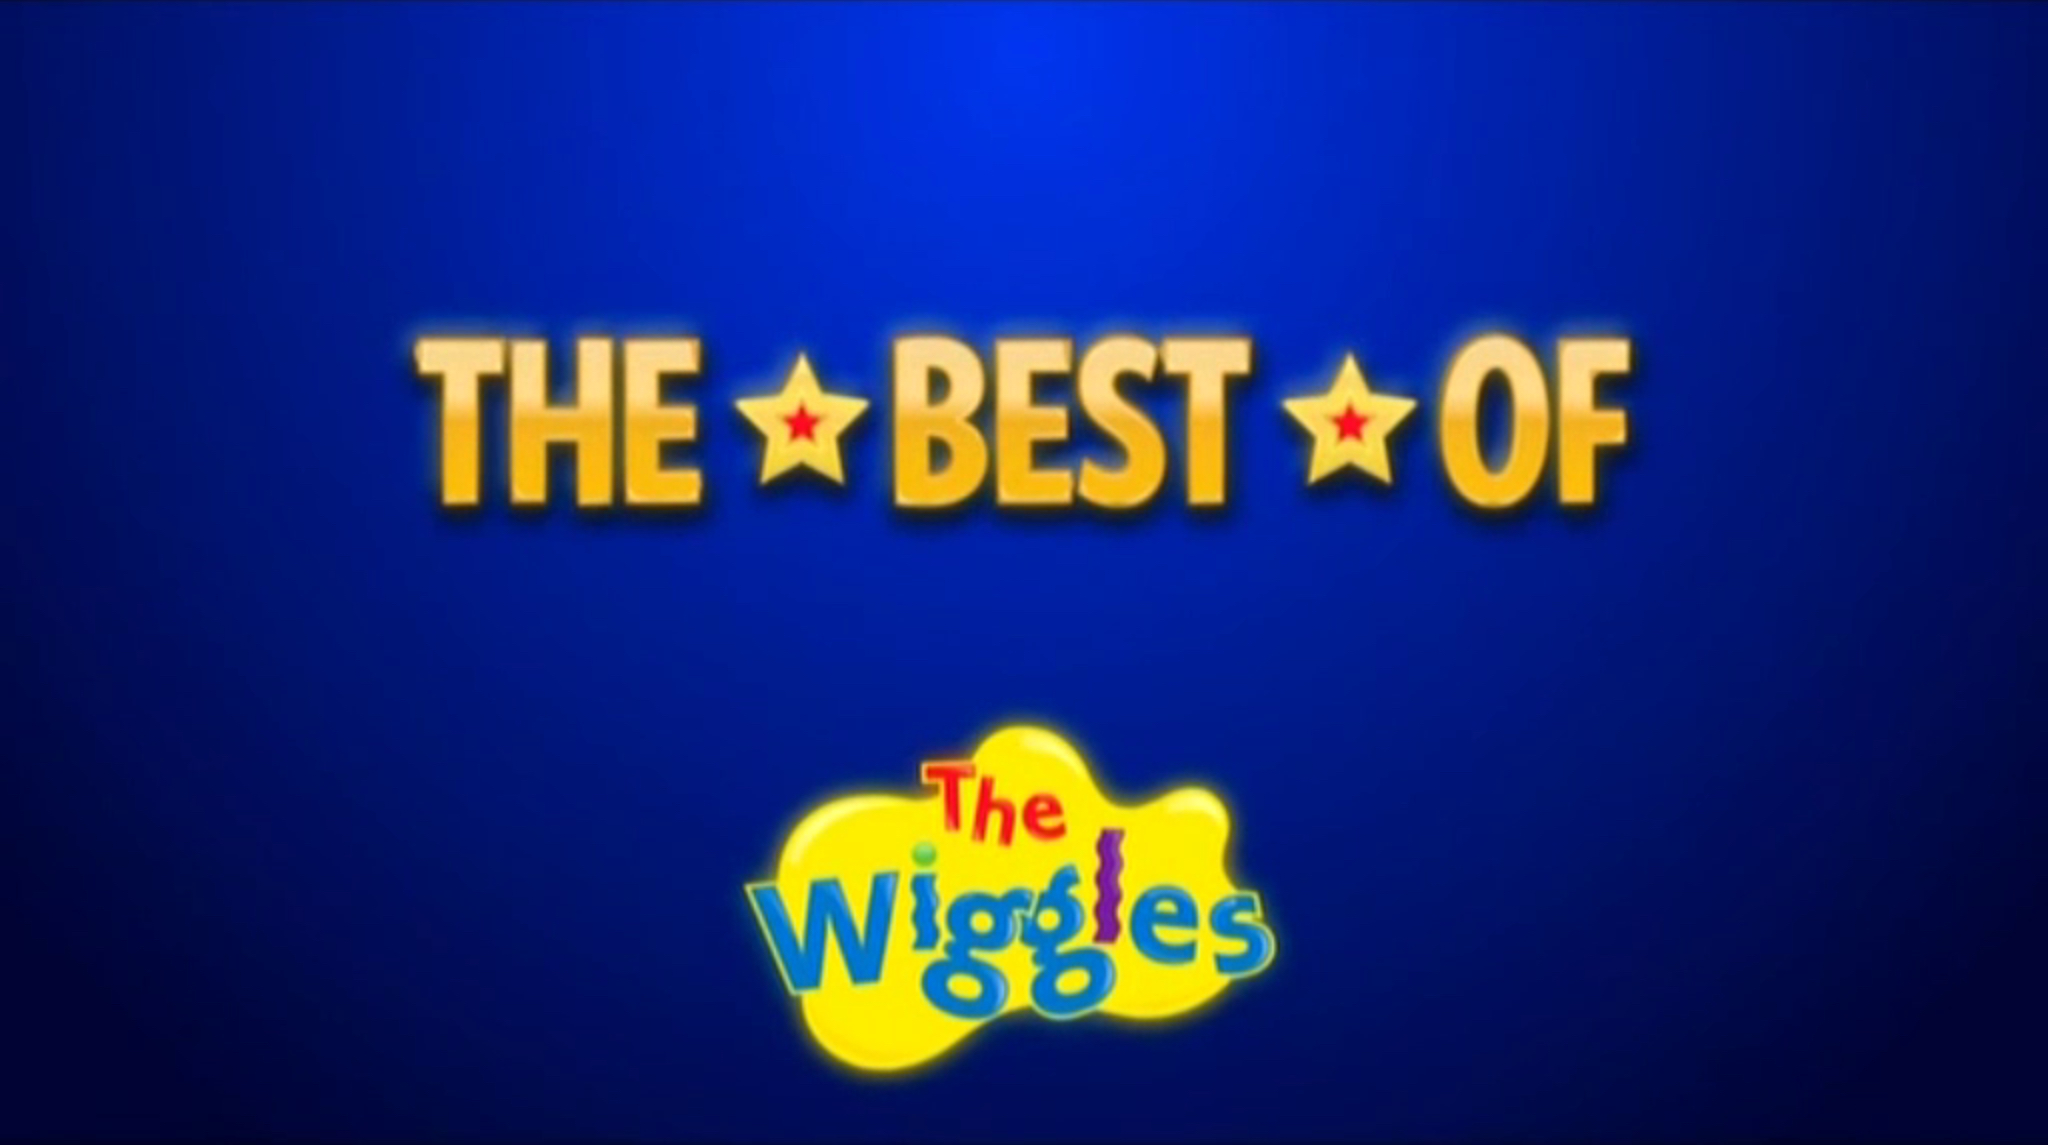 The Best of The Wiggles (2018 video)/Gallery